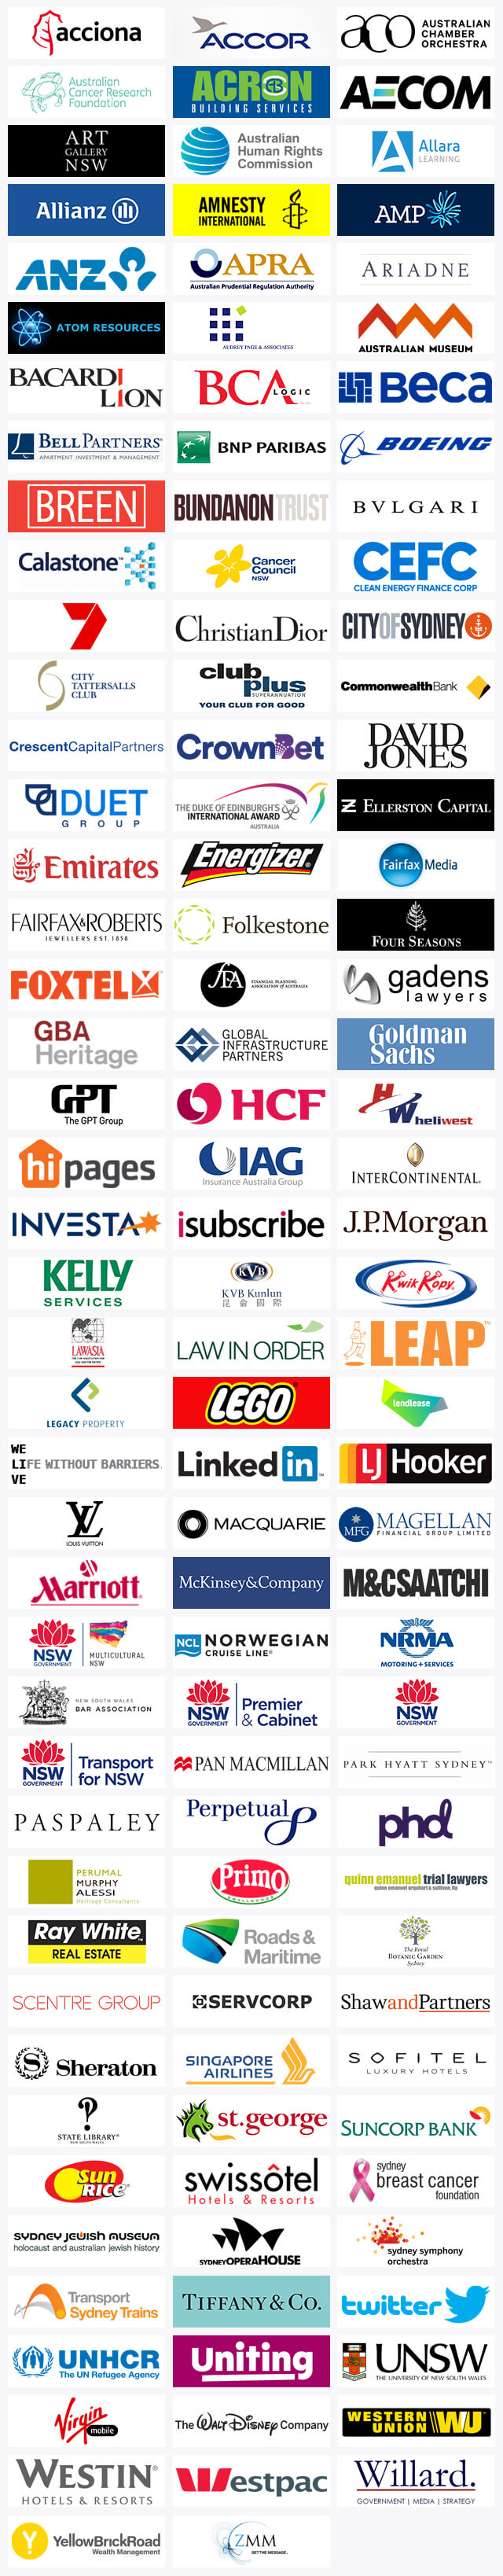 corporate _clients_logos_new